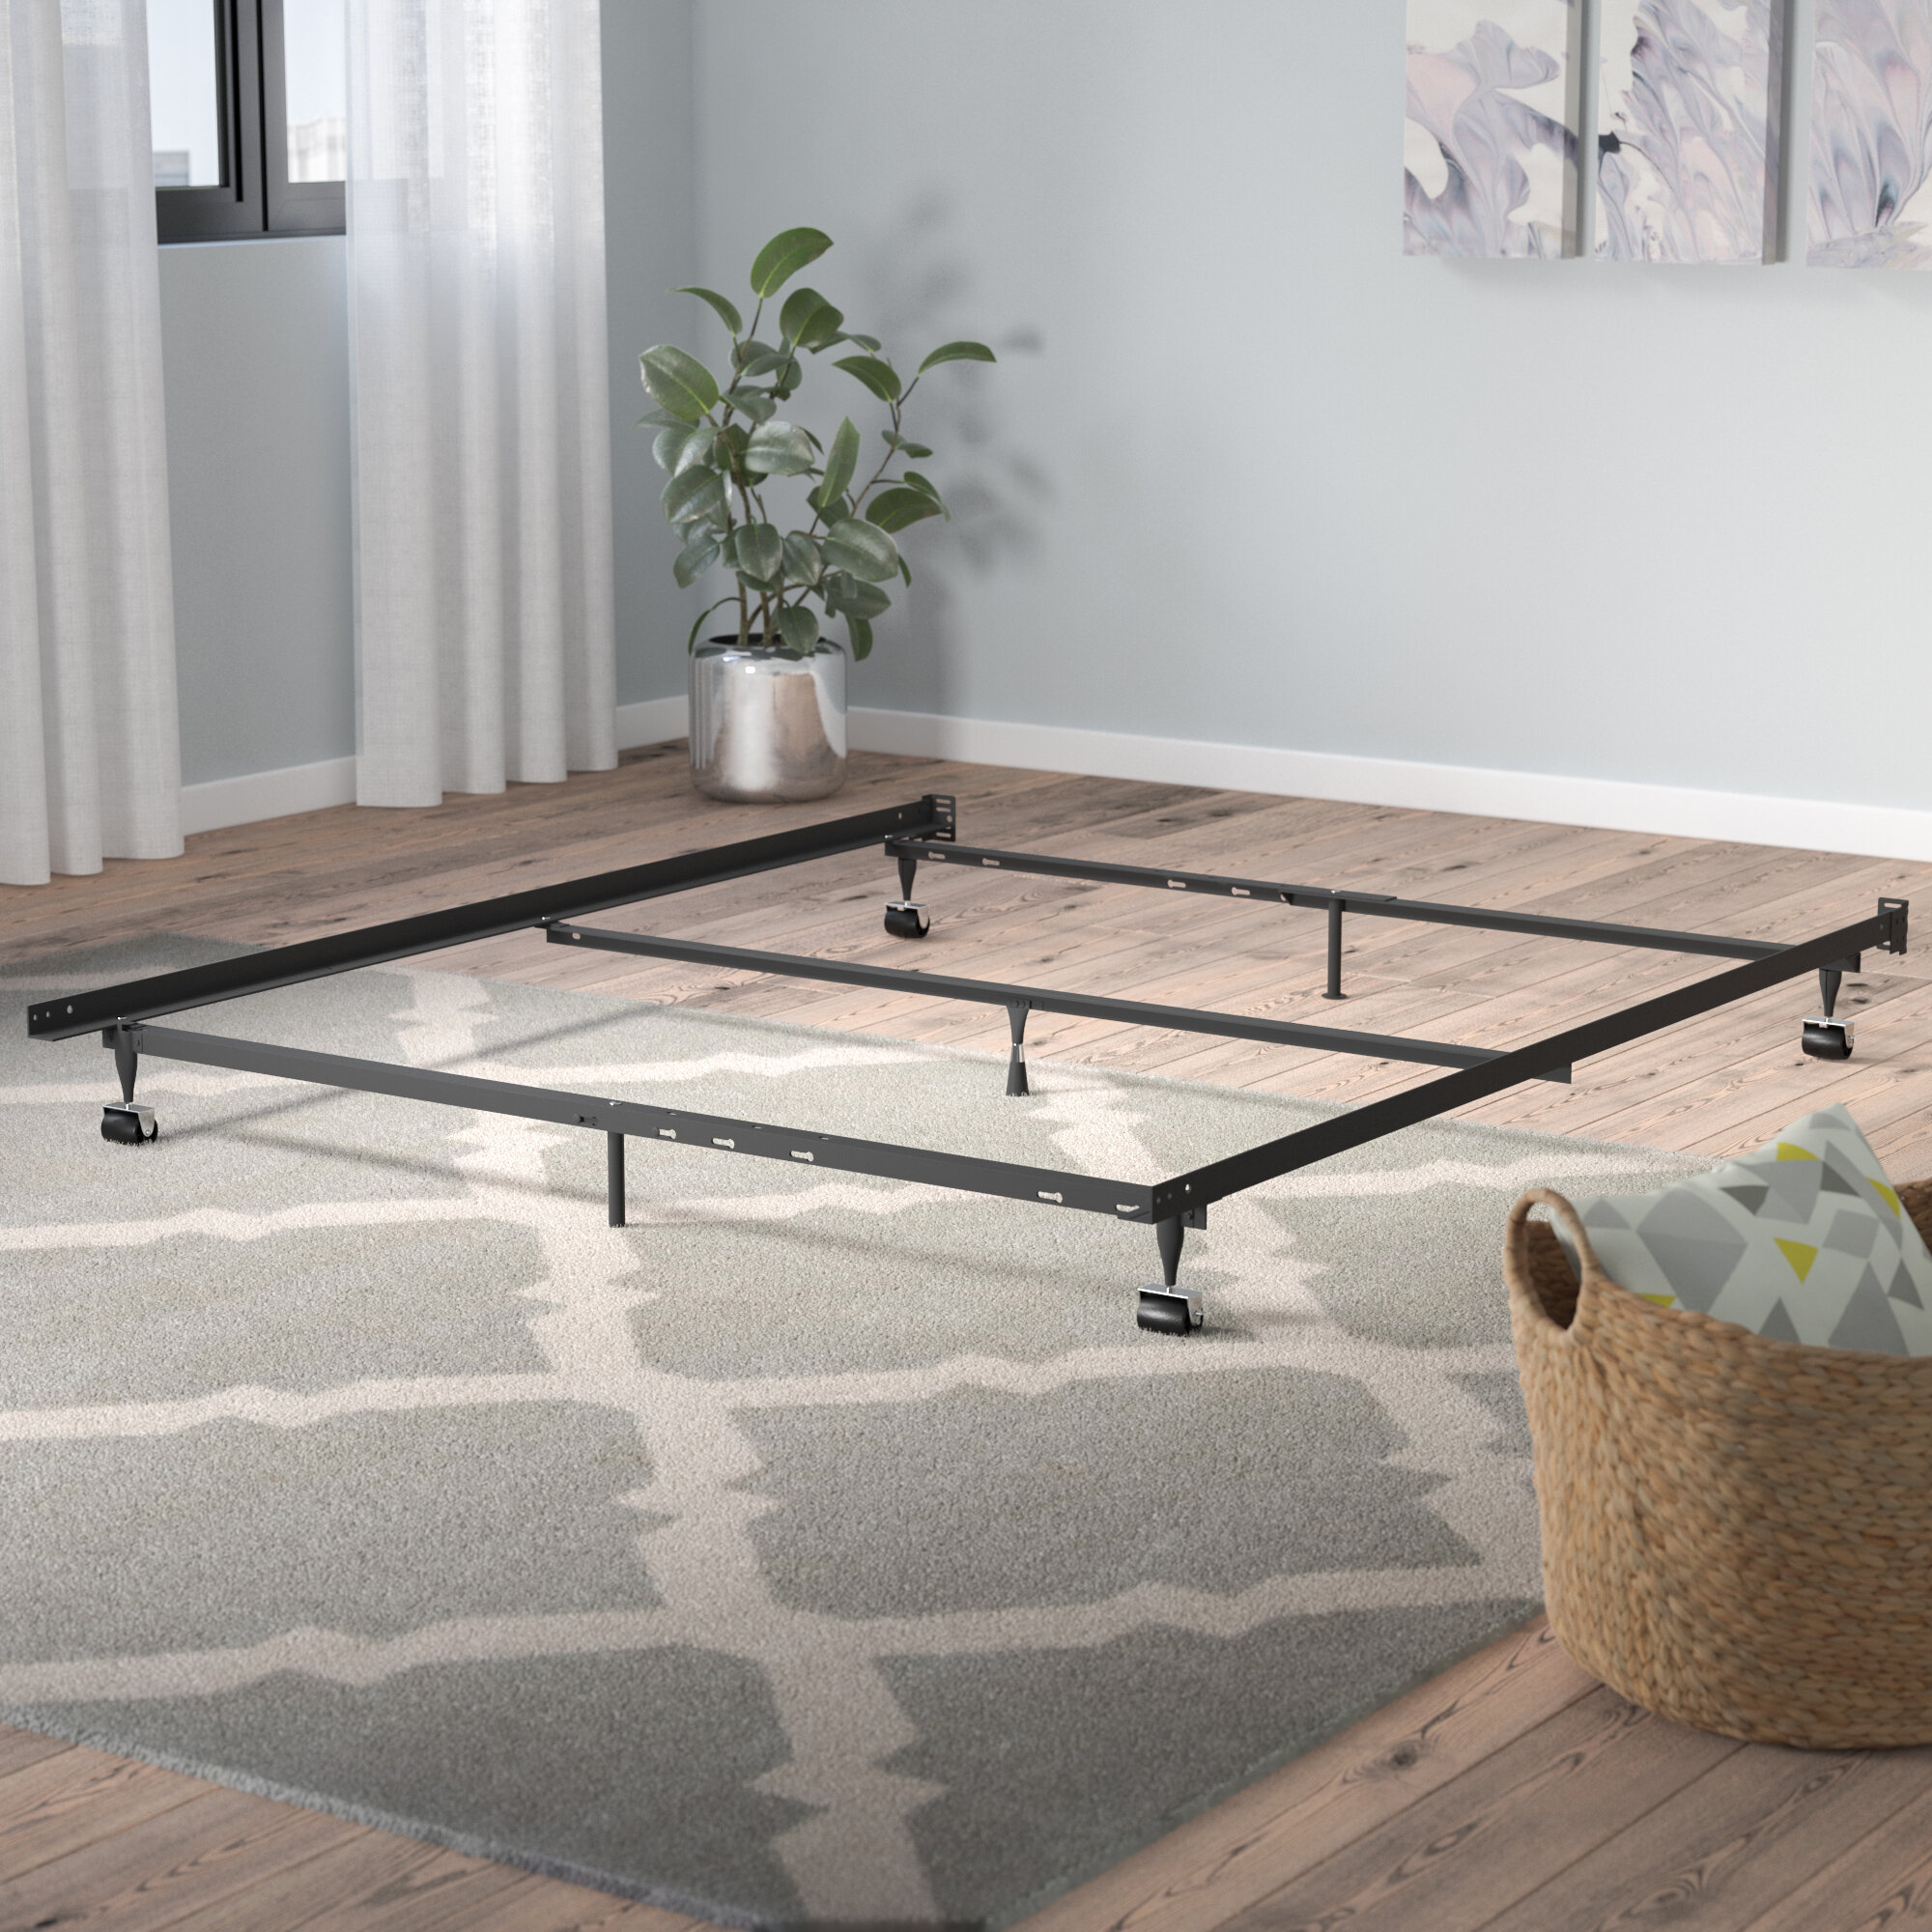 Symple Stuff Laverne Heavy Duty 7 Leg Adjustable Metal Bed Frame With Center Support And Rug Roller Reviews